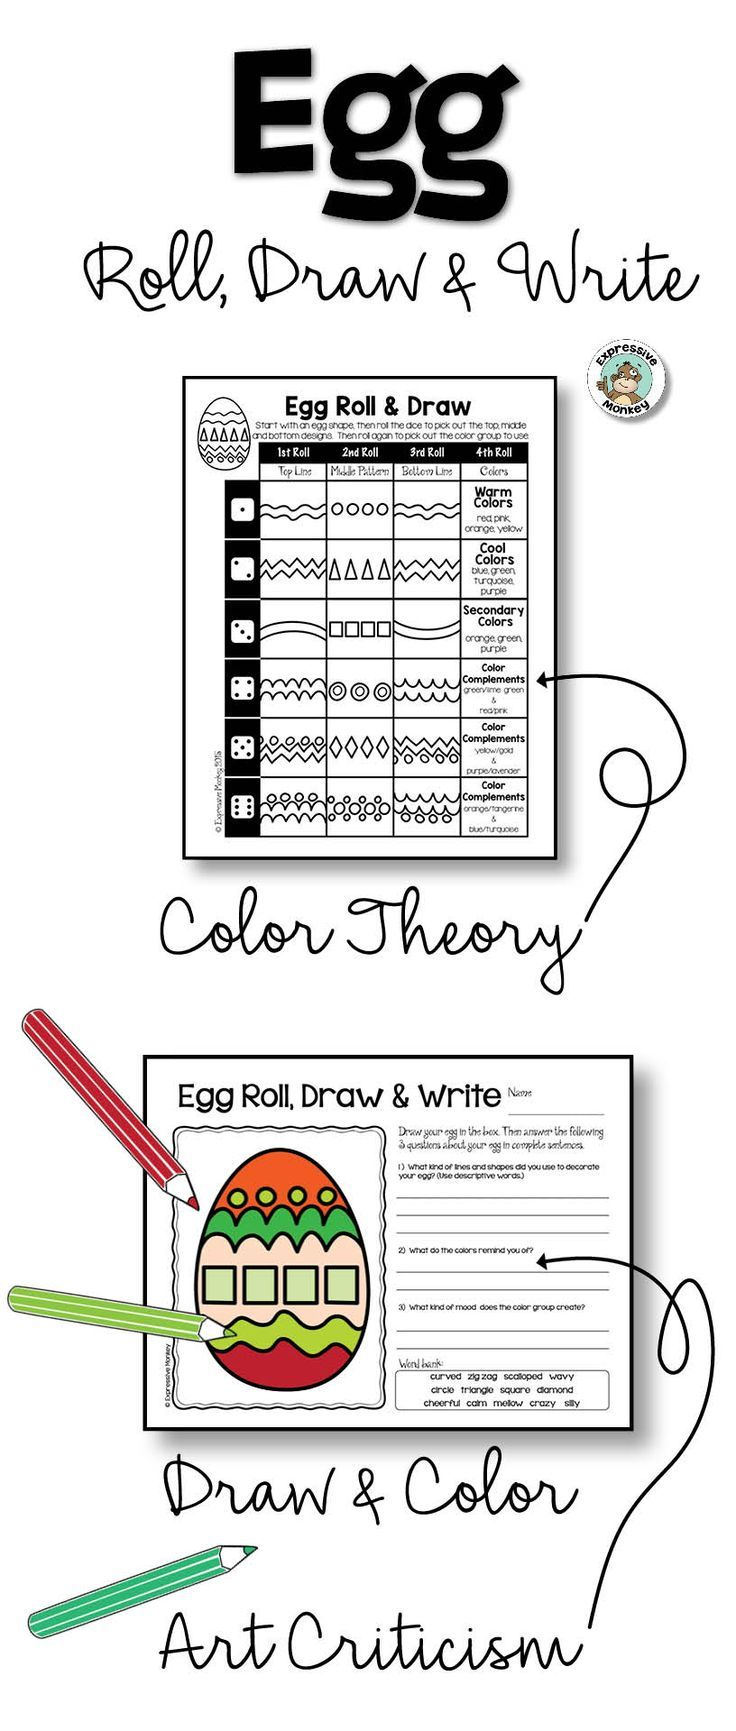 must see art criticism pins art critique art analysis and egg roll draw write is a fun way to mix up drawing